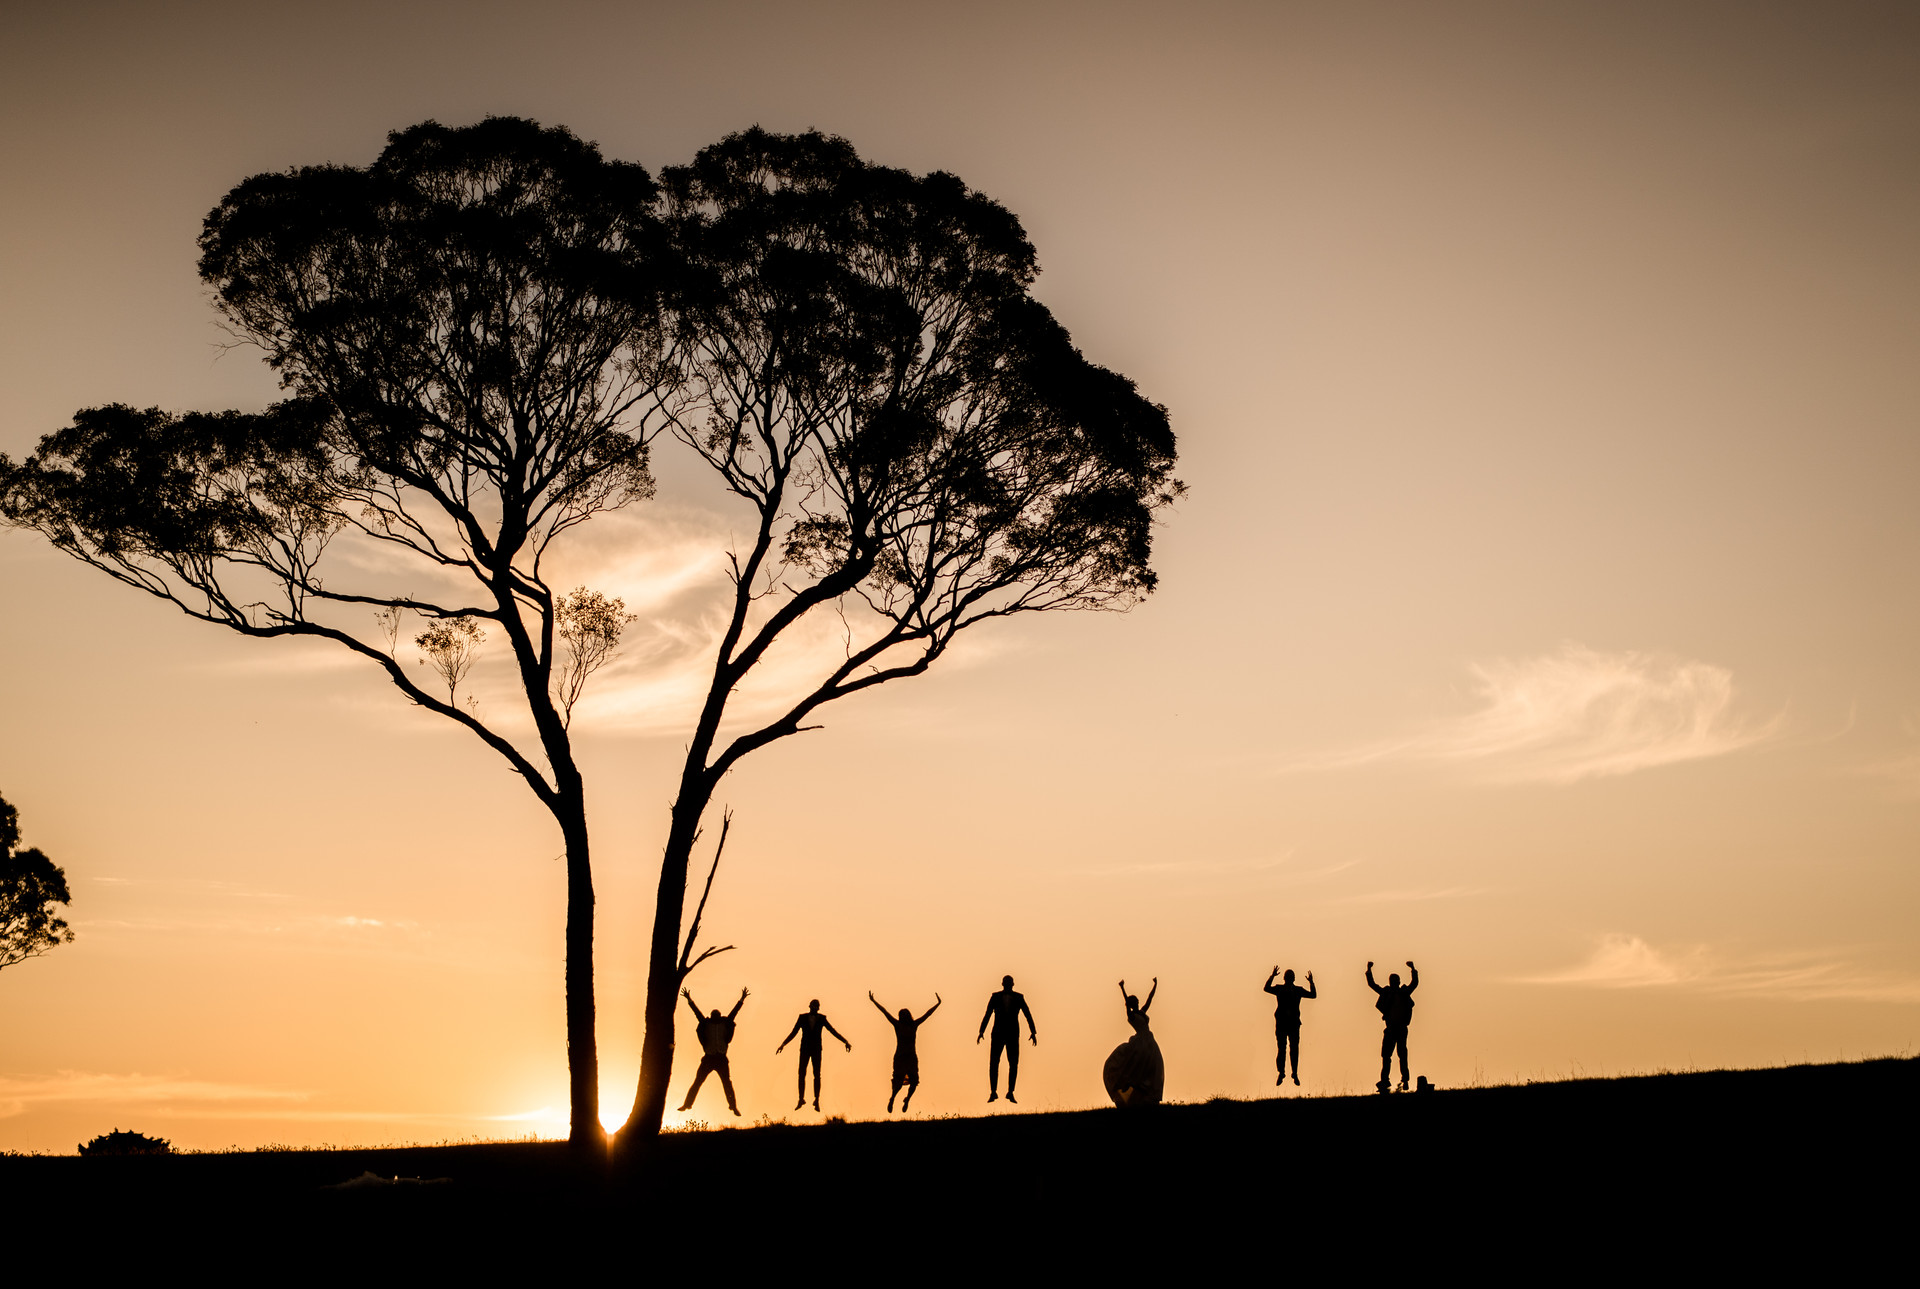 Party guests jumping in distance in sunset